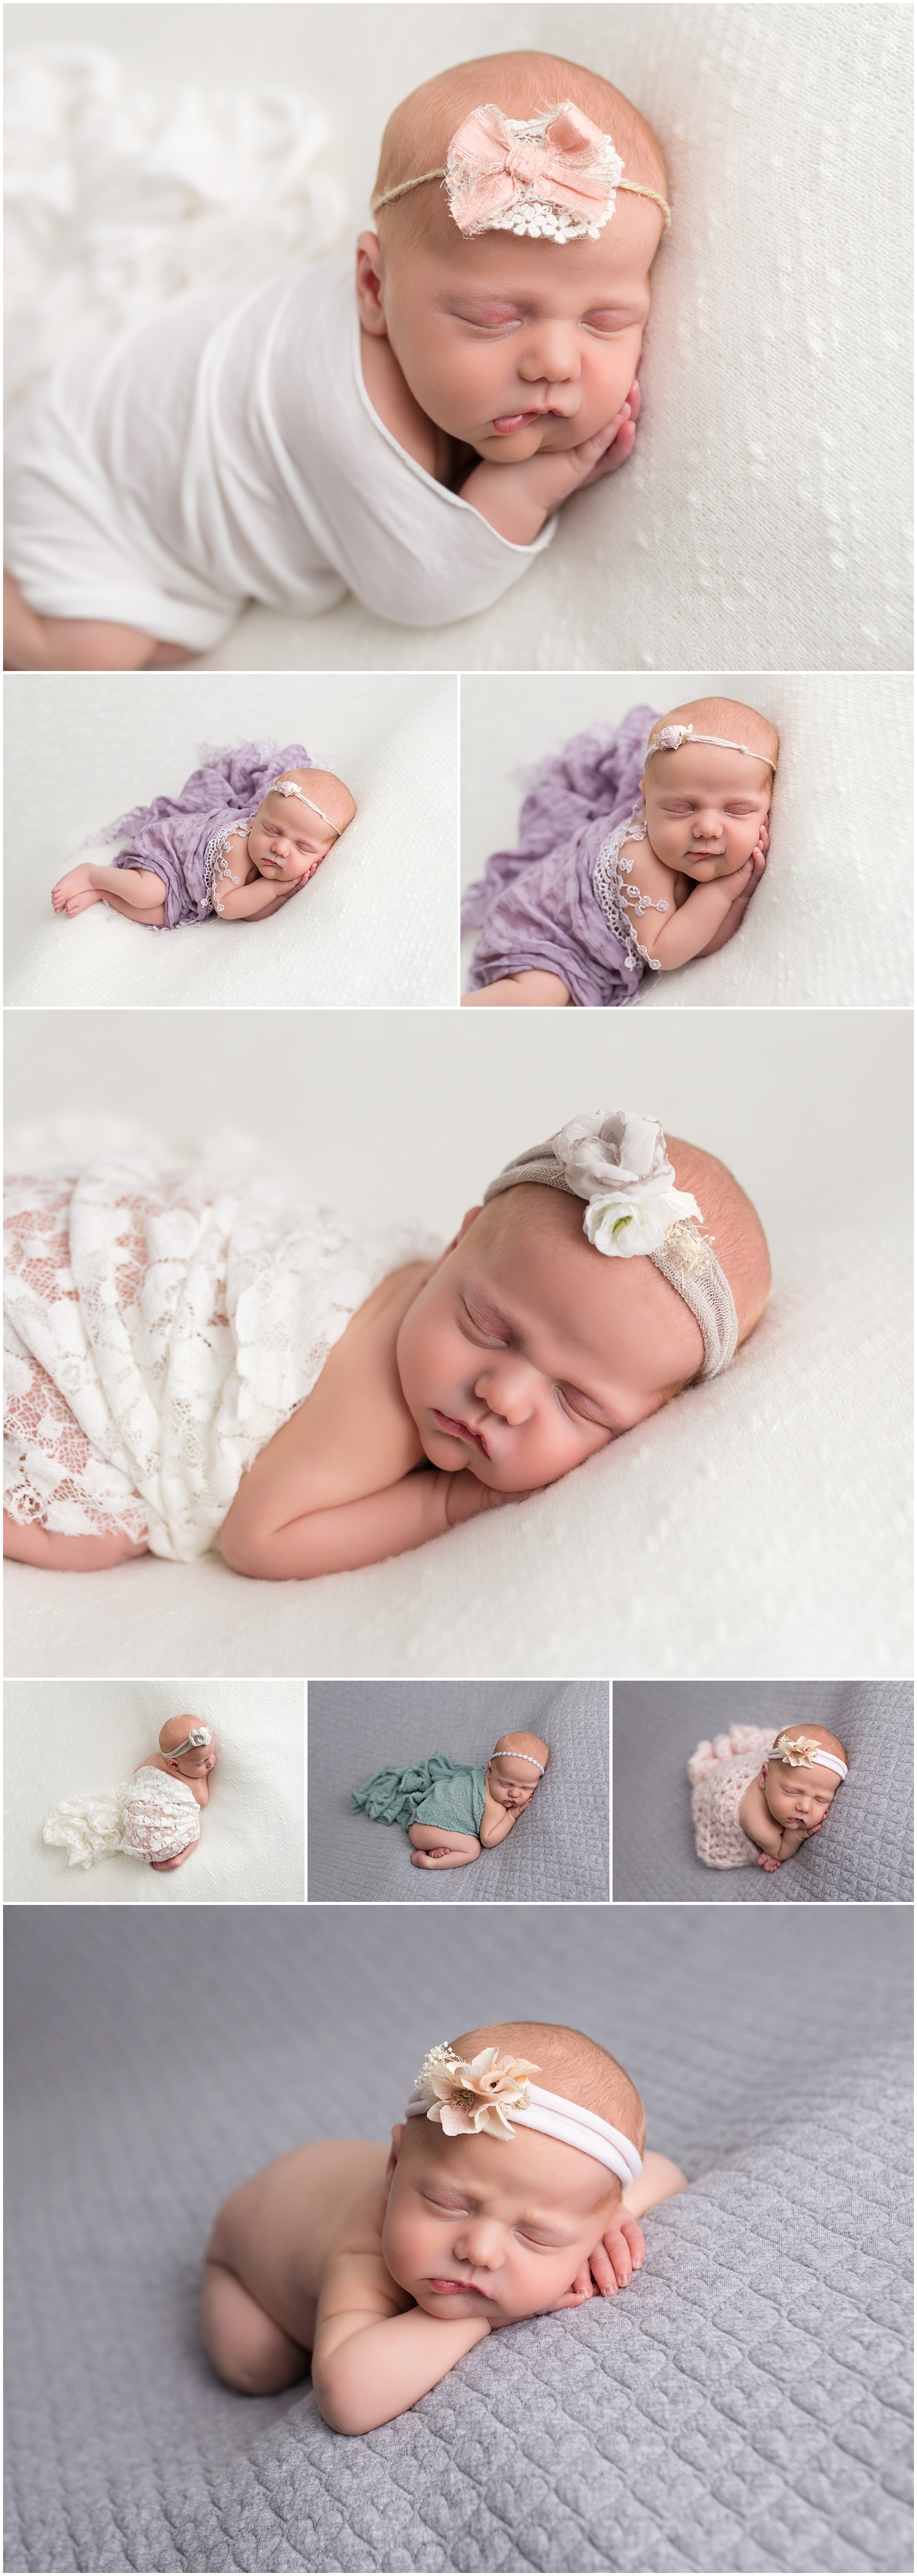 newborn photographer welcome baby